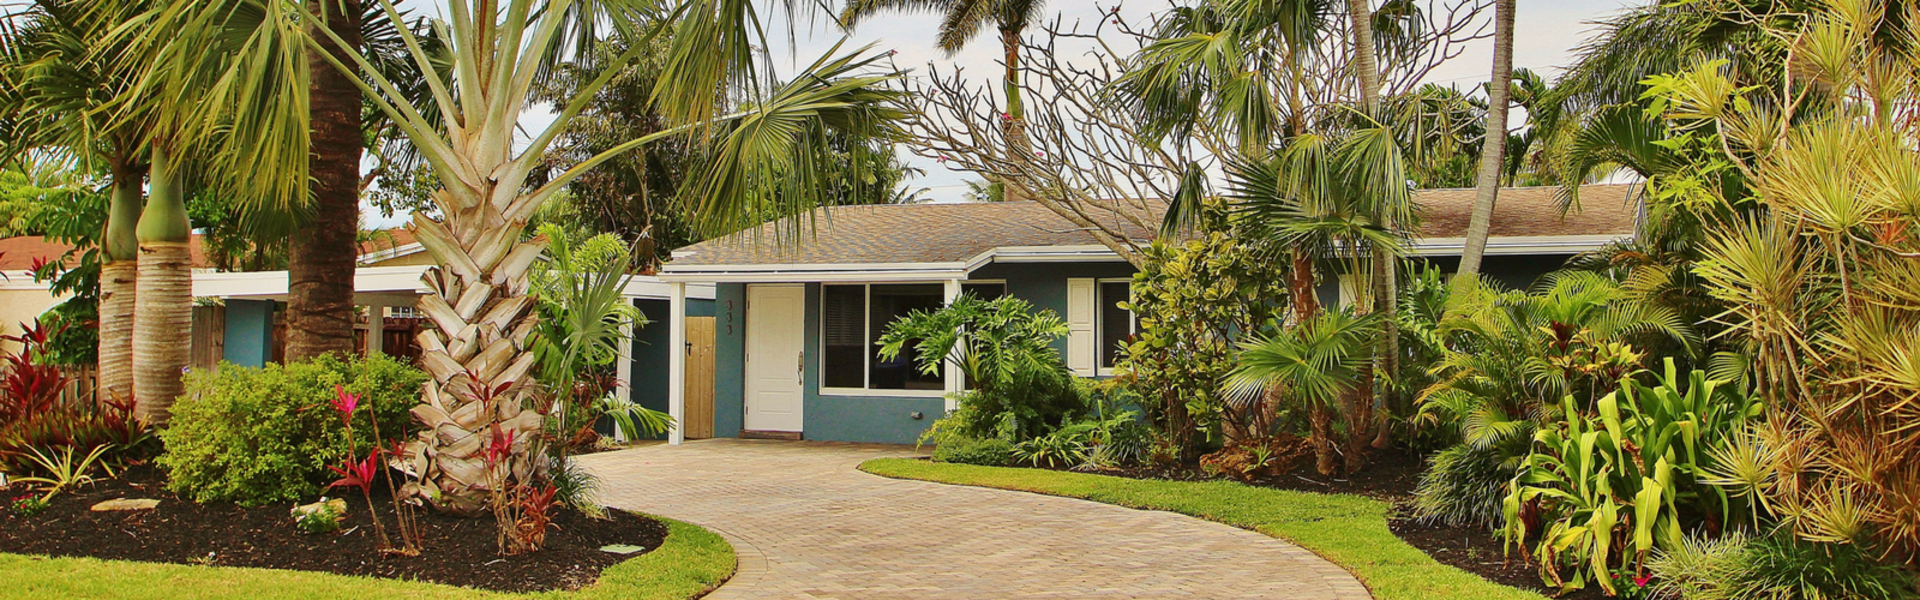 FOR SALE: UPDATED WILTON MANORS, 3 BEDROOM /2 BATHROOM POOL HOME